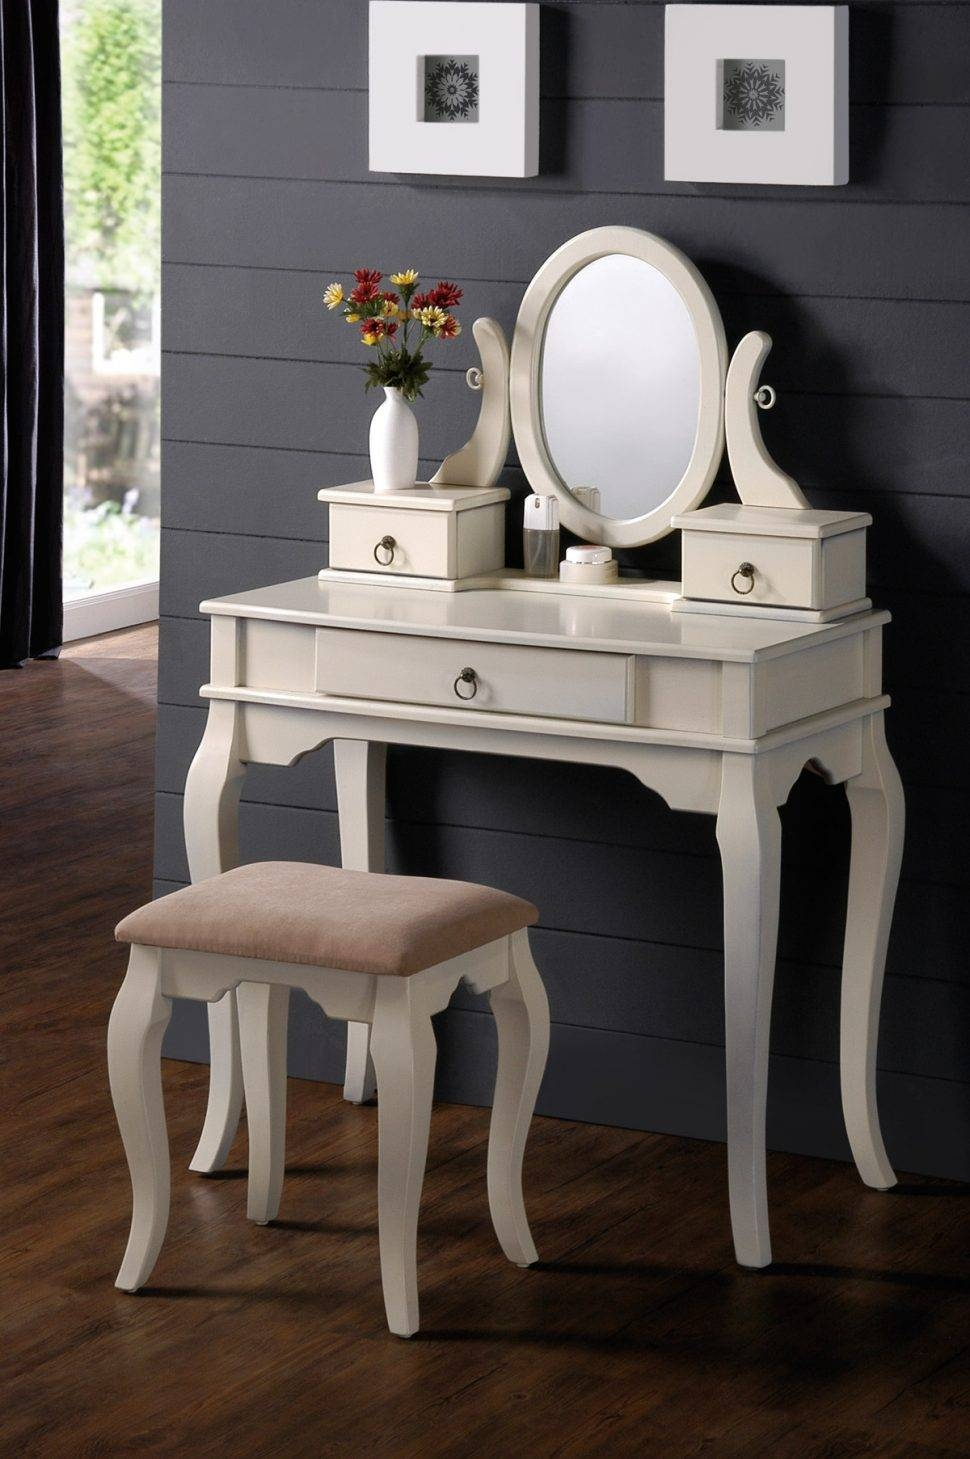 Bedroom Furniture : Wall Mirrors Decorative Black Dressing Table throughout Black Dressing Mirrors (Image 5 of 25)